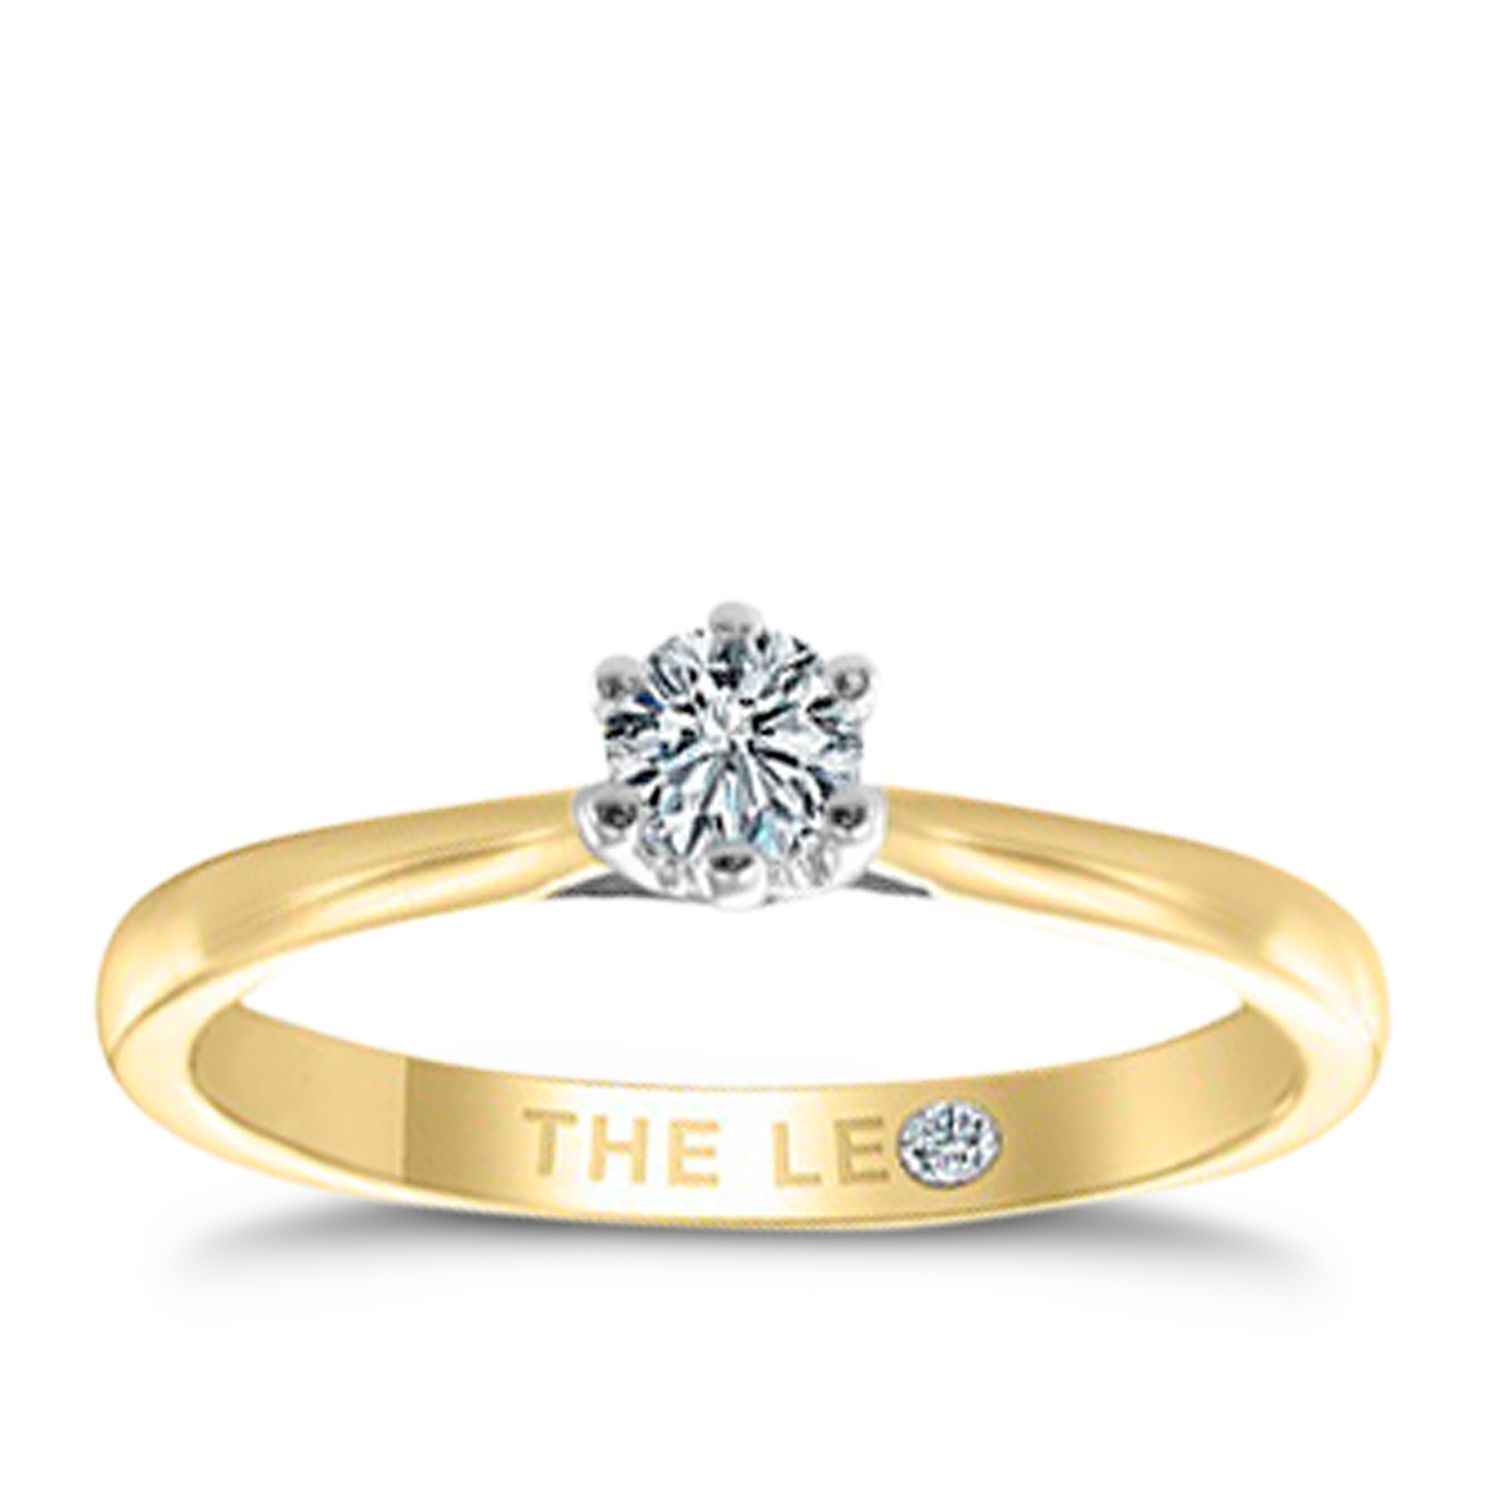 Leo Diamond 18ct Rose Gold 1/4ct I-I1 Solitaire Ring - Product number 4057686